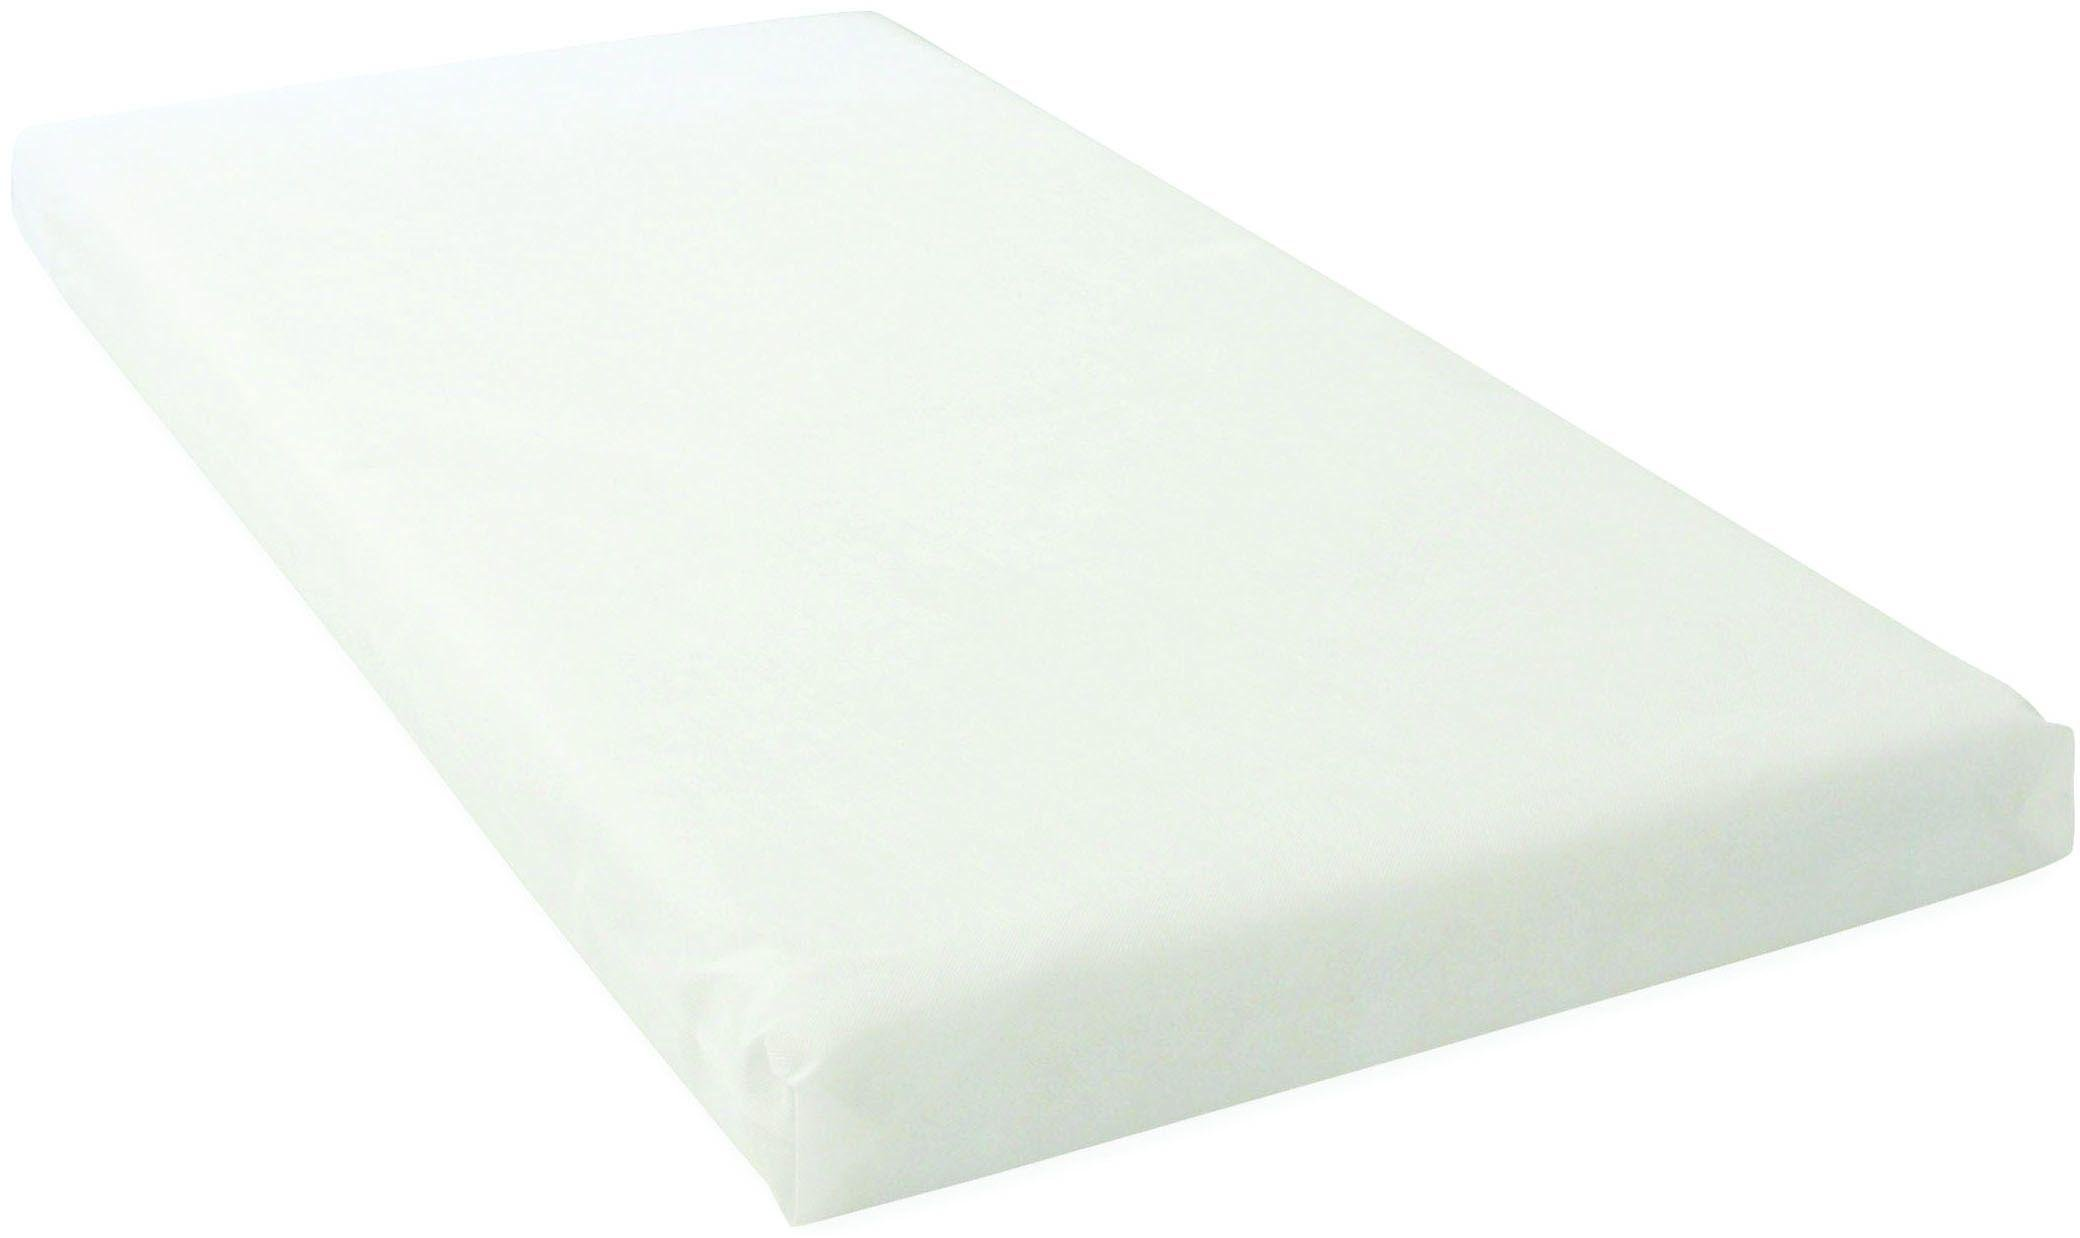 East Coast Nursery Ultra Fibre Cot Bed Mattress